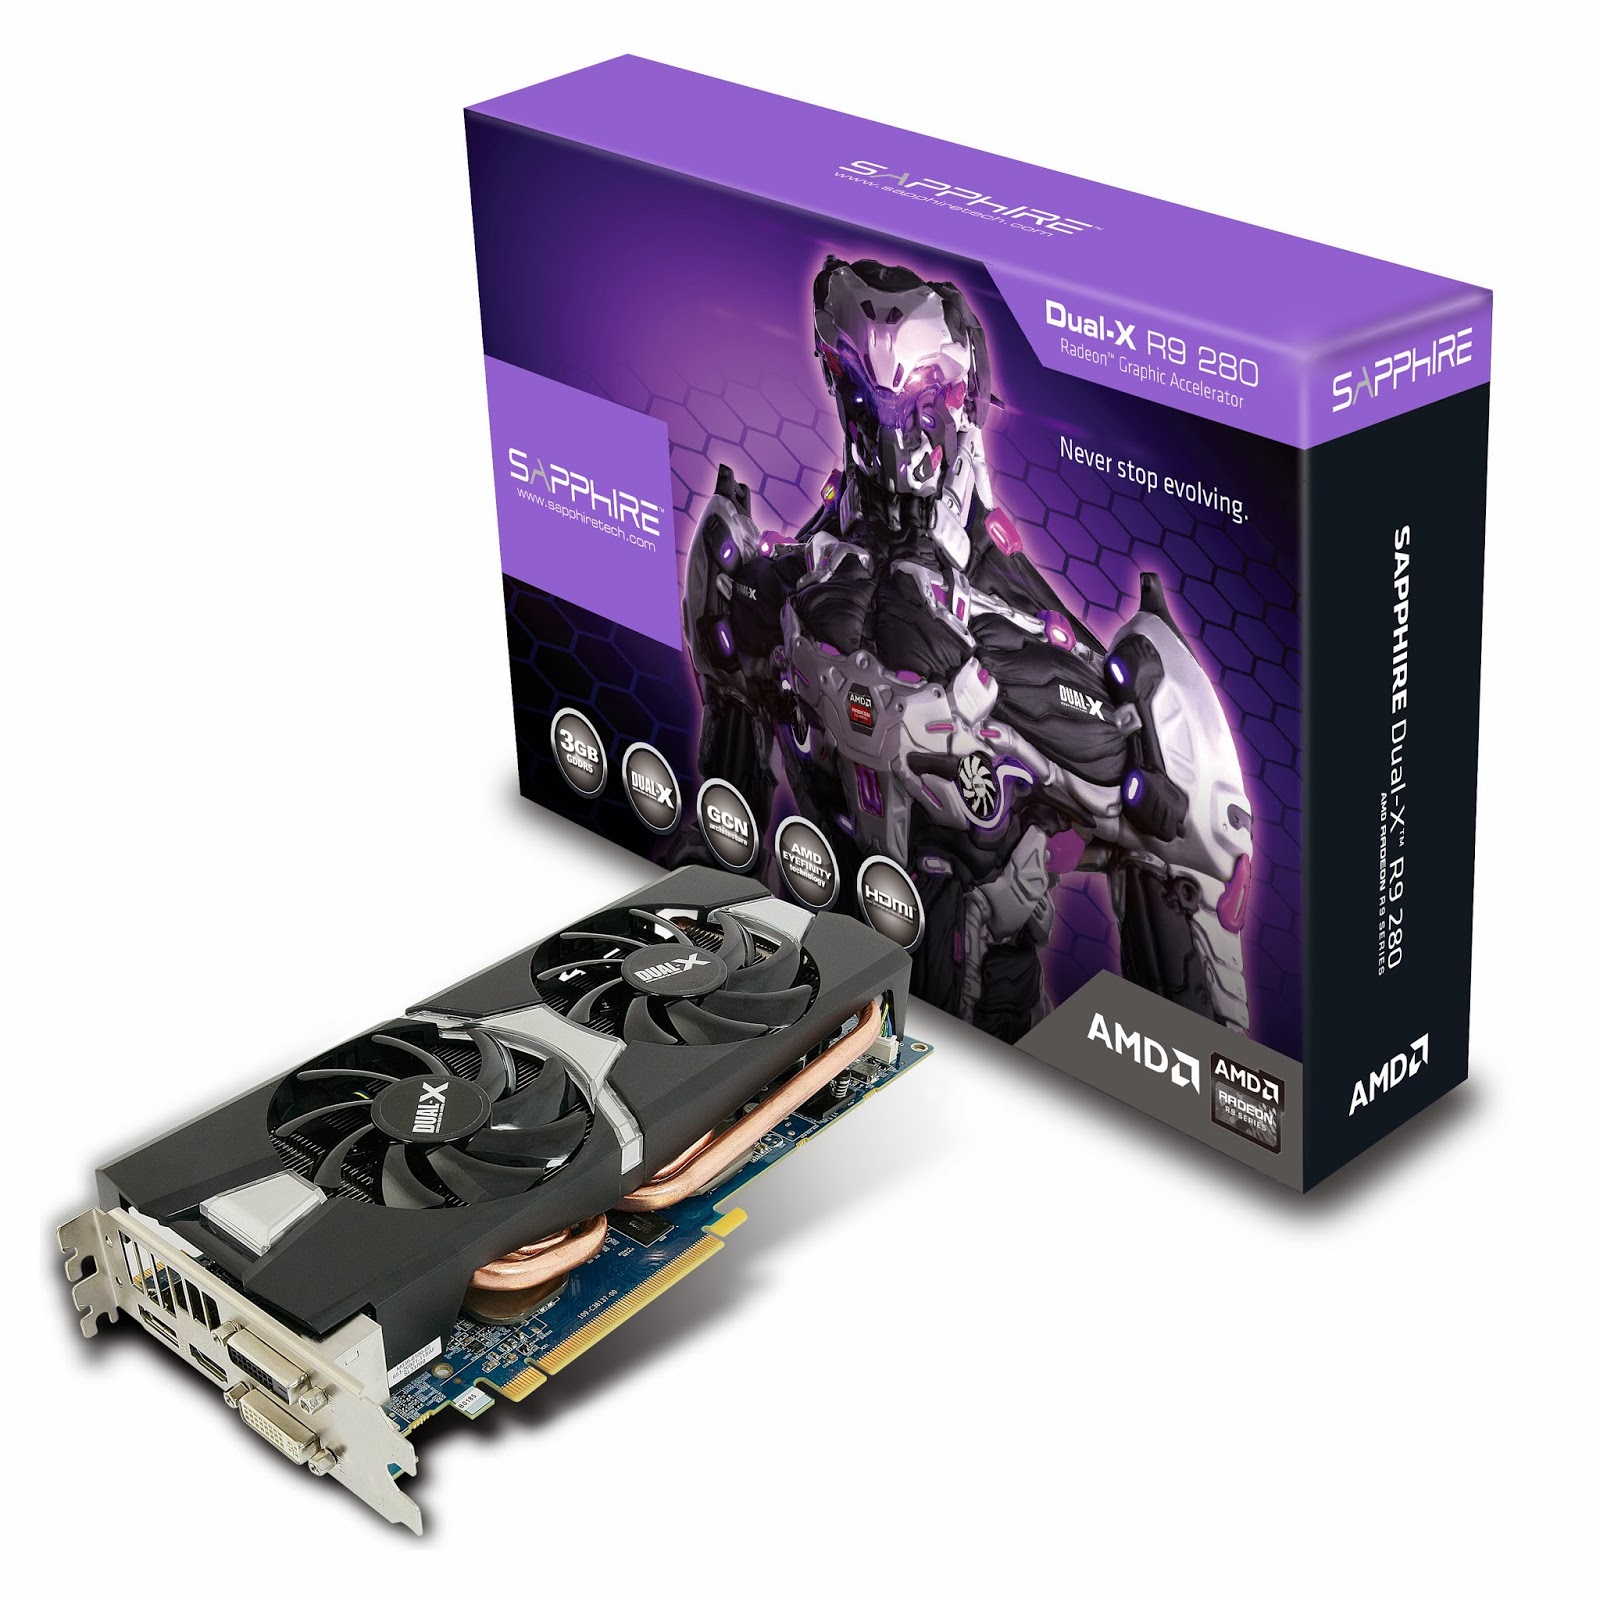 SAPPHIRE STRENGTHENS R9 GRAPHICS SERIES NEW R9 280 Dual-X and R9 280X Vapor-X models 1